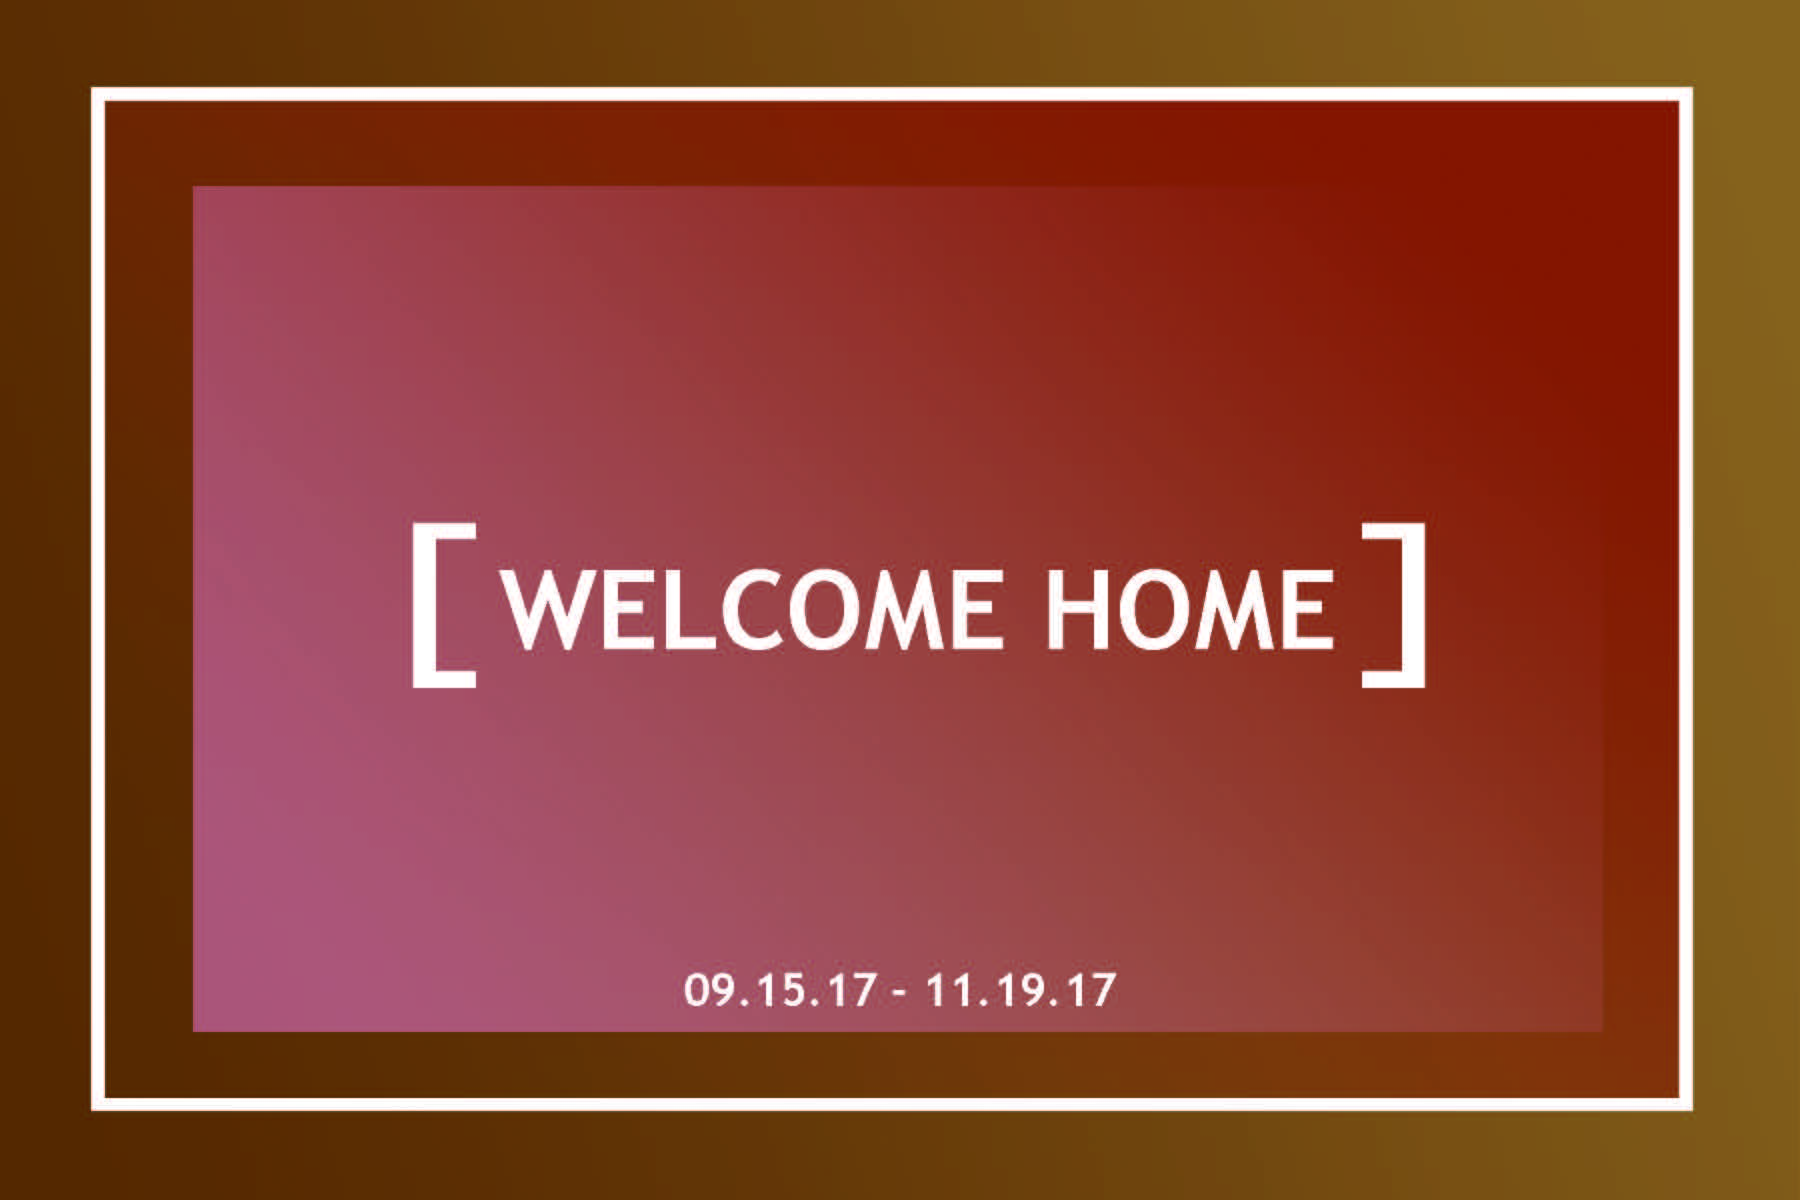 WelcomeHome_front01.jpg